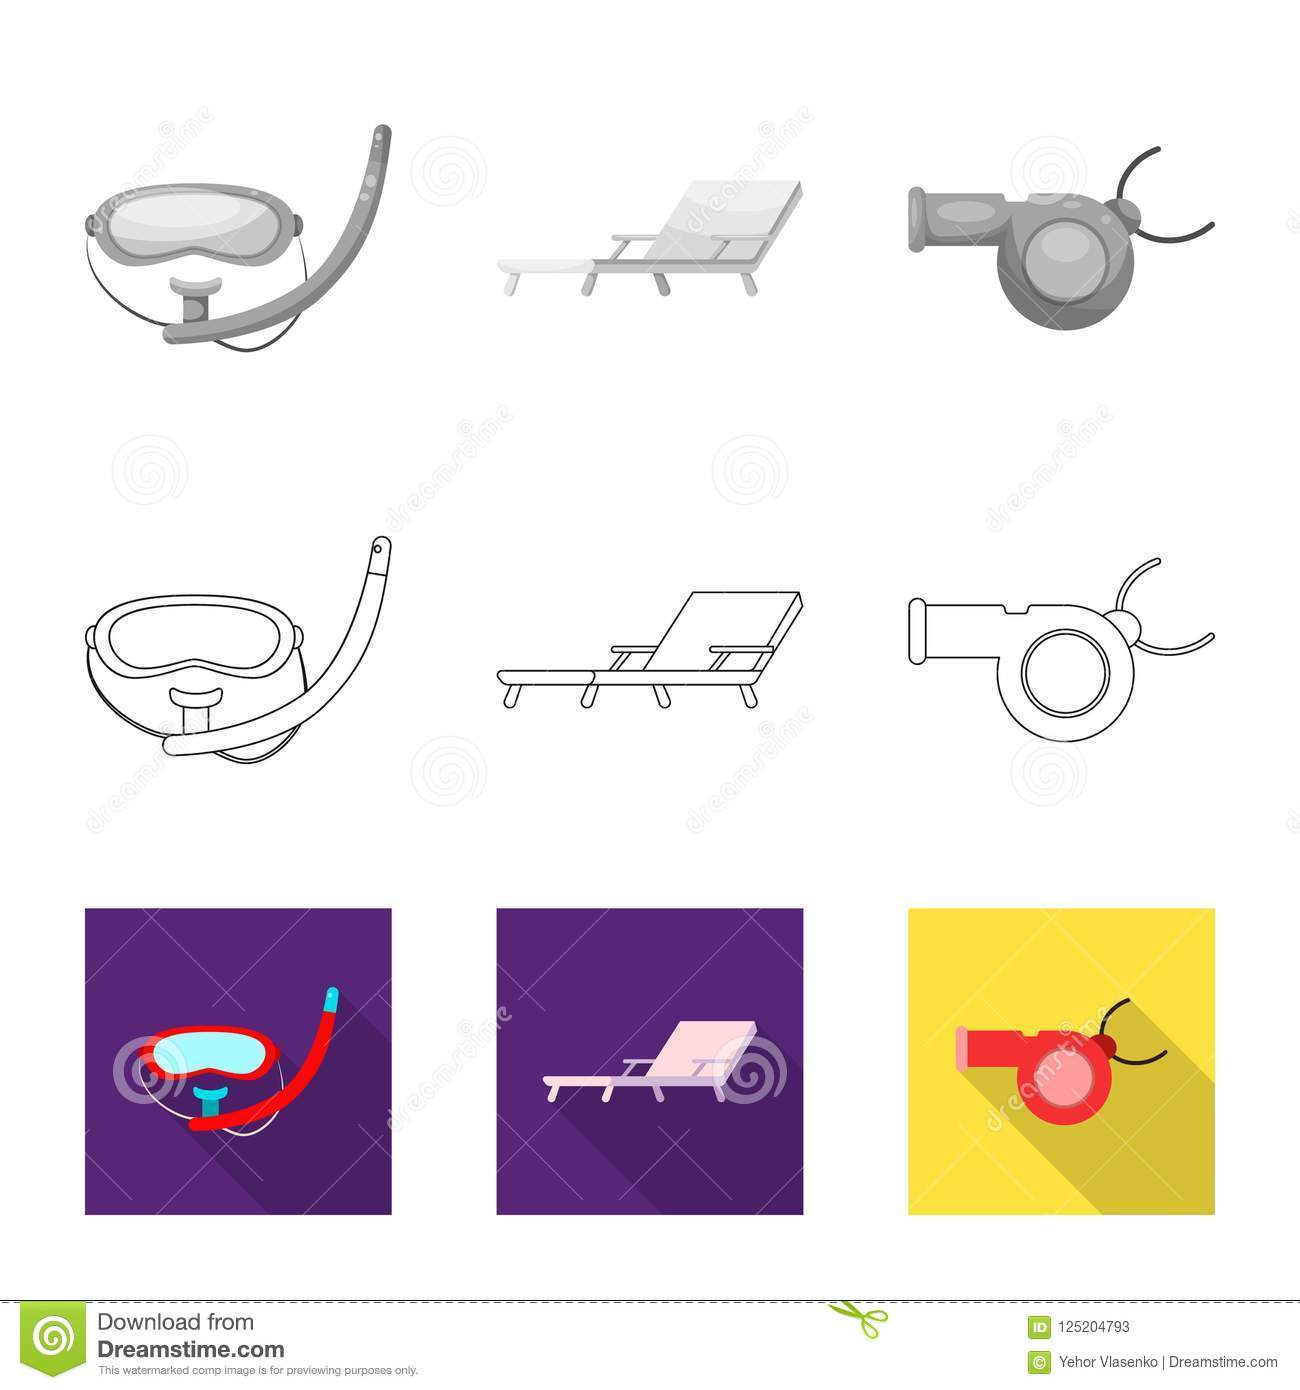 Vector Illustration Of Pool And Swimming Sign Collection Of Pool